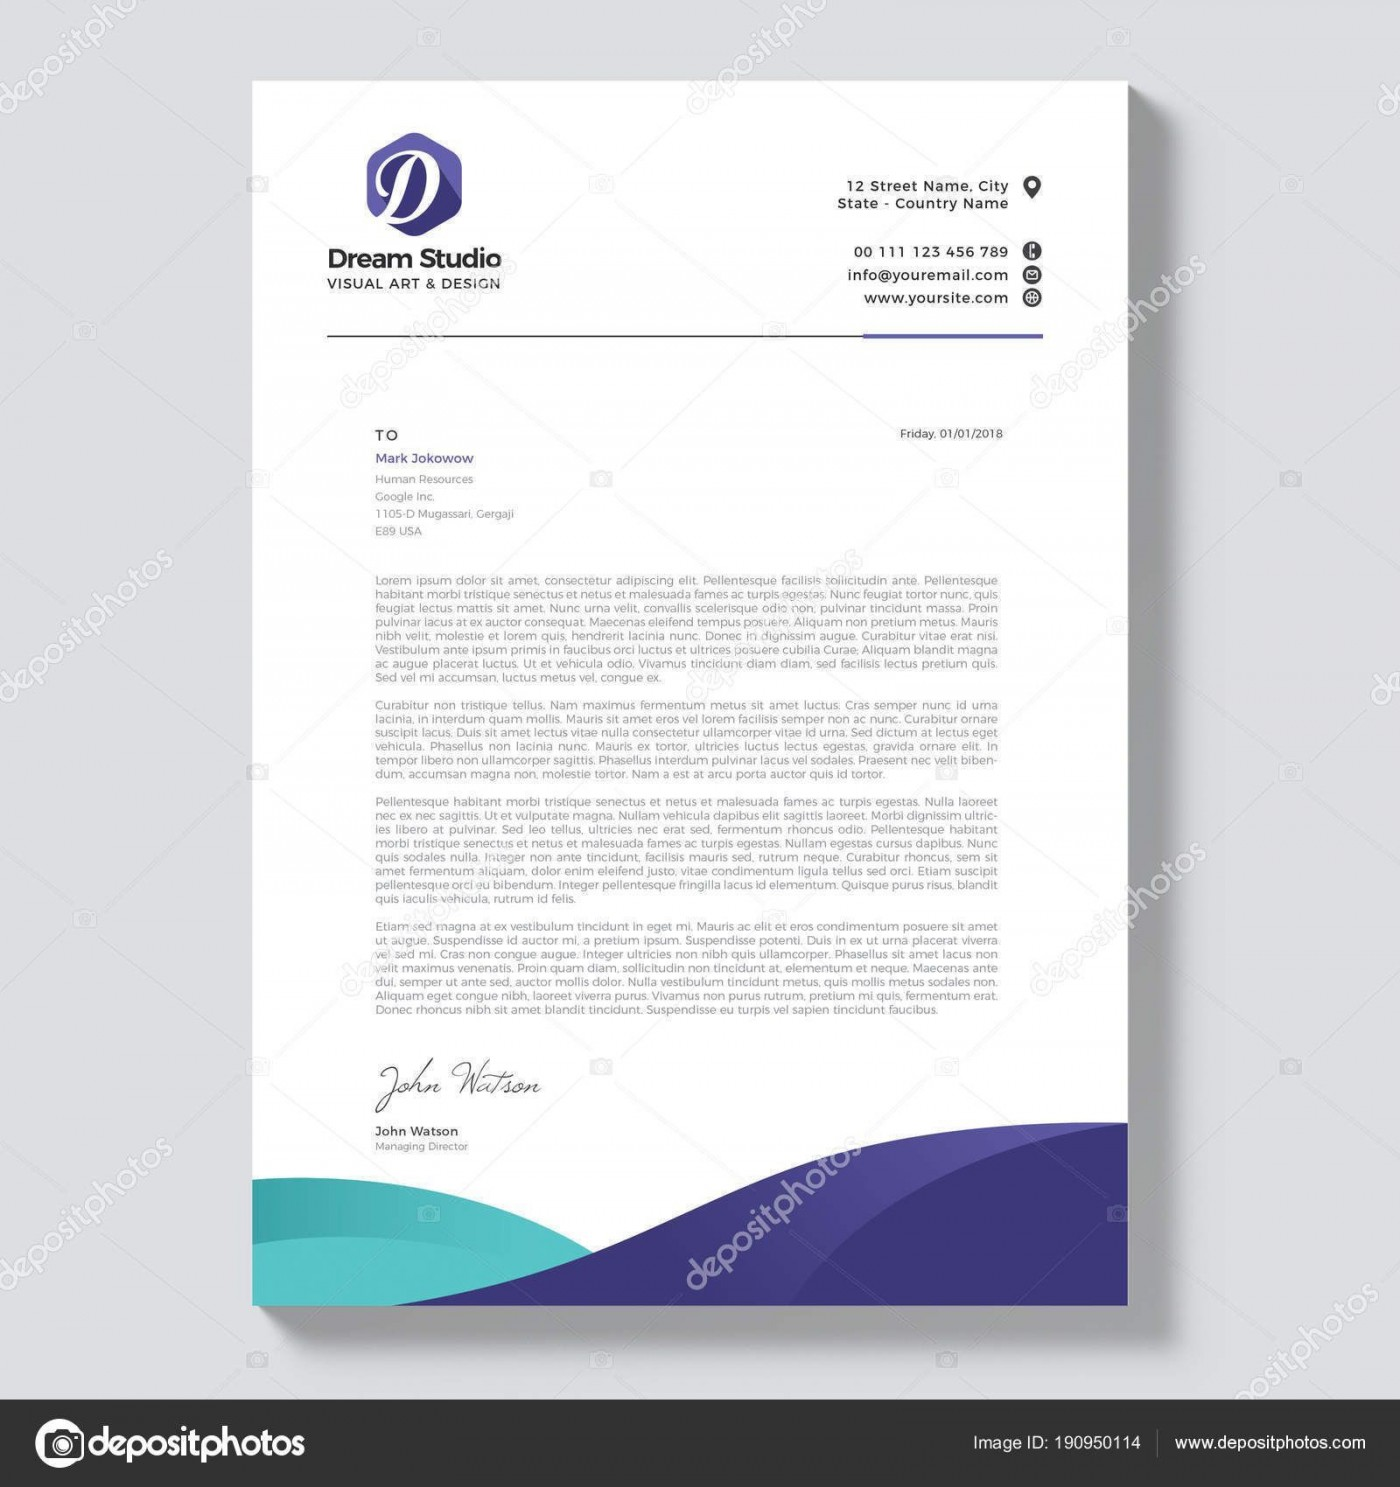 003 Shocking Letterhead Template Free Download Ai High Definition  File1400